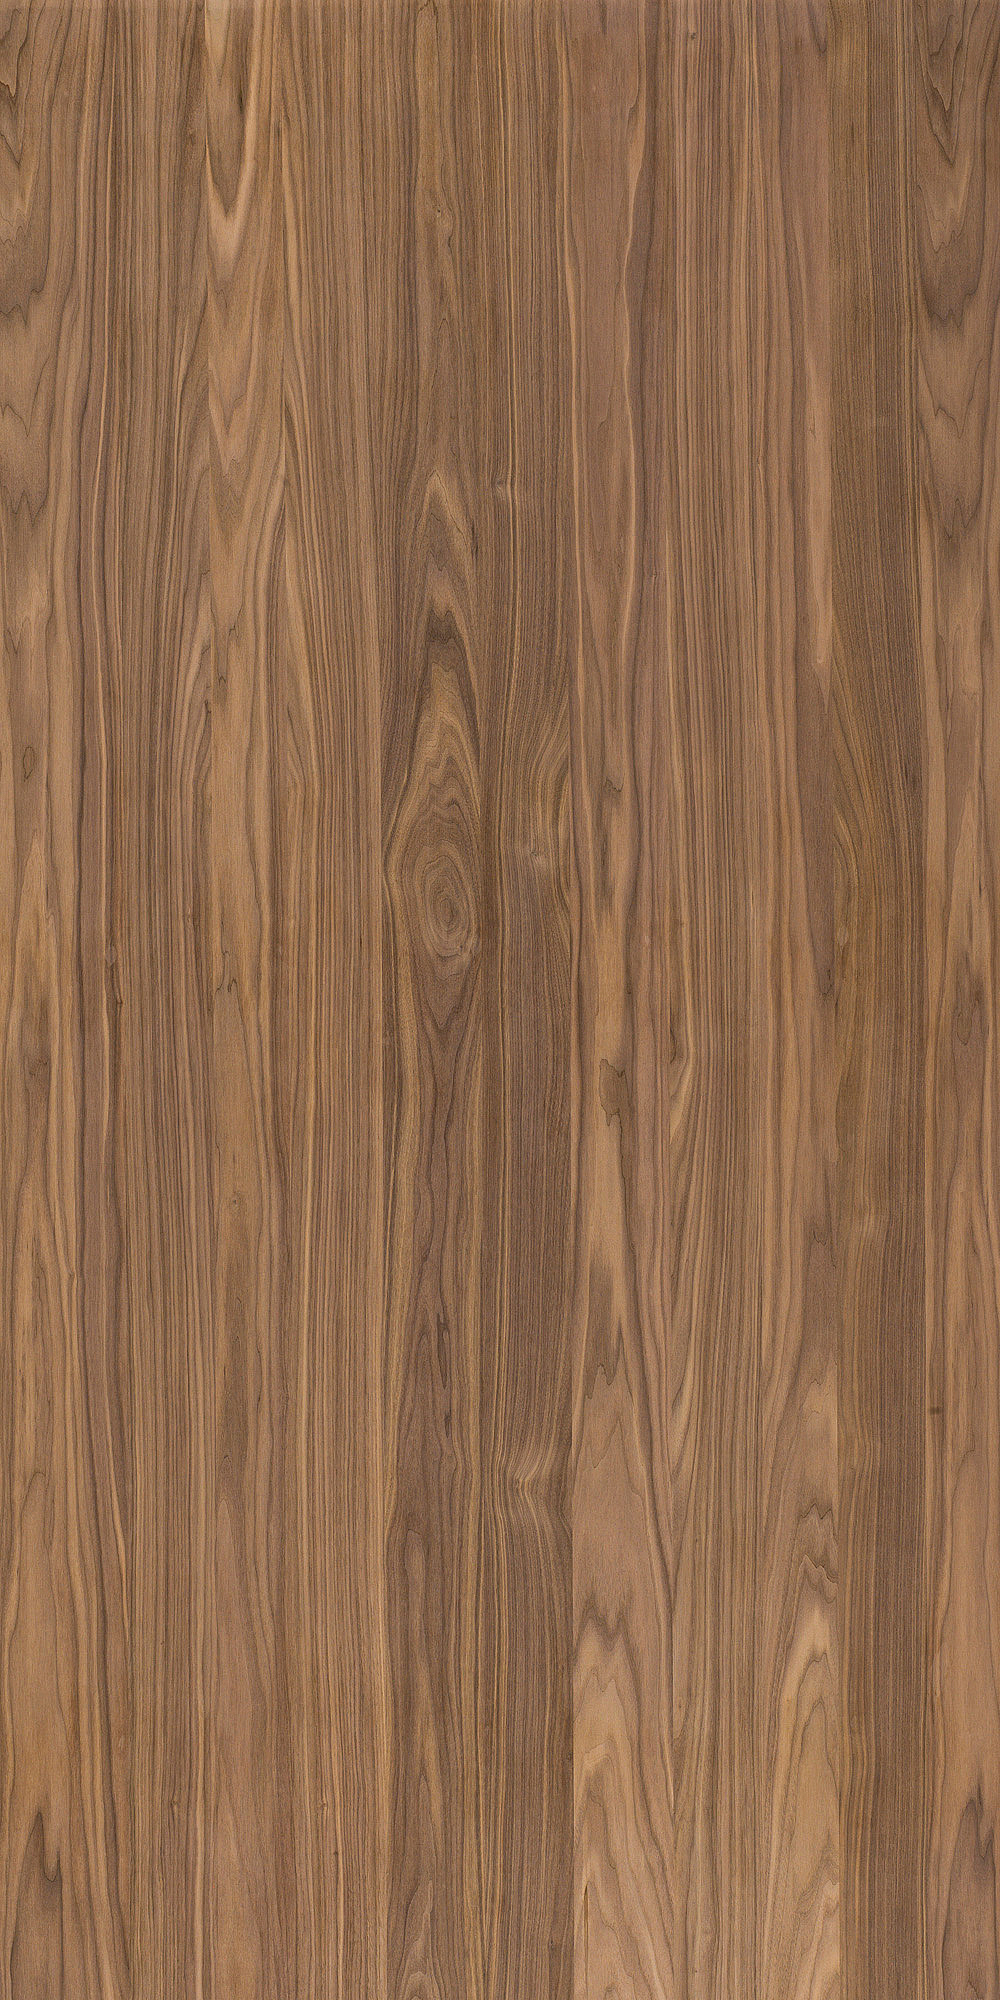 Wood specie: American Walnut<br />Slicing technique: CROWN CUT<br />Jointing technique: MIX-MATCHED